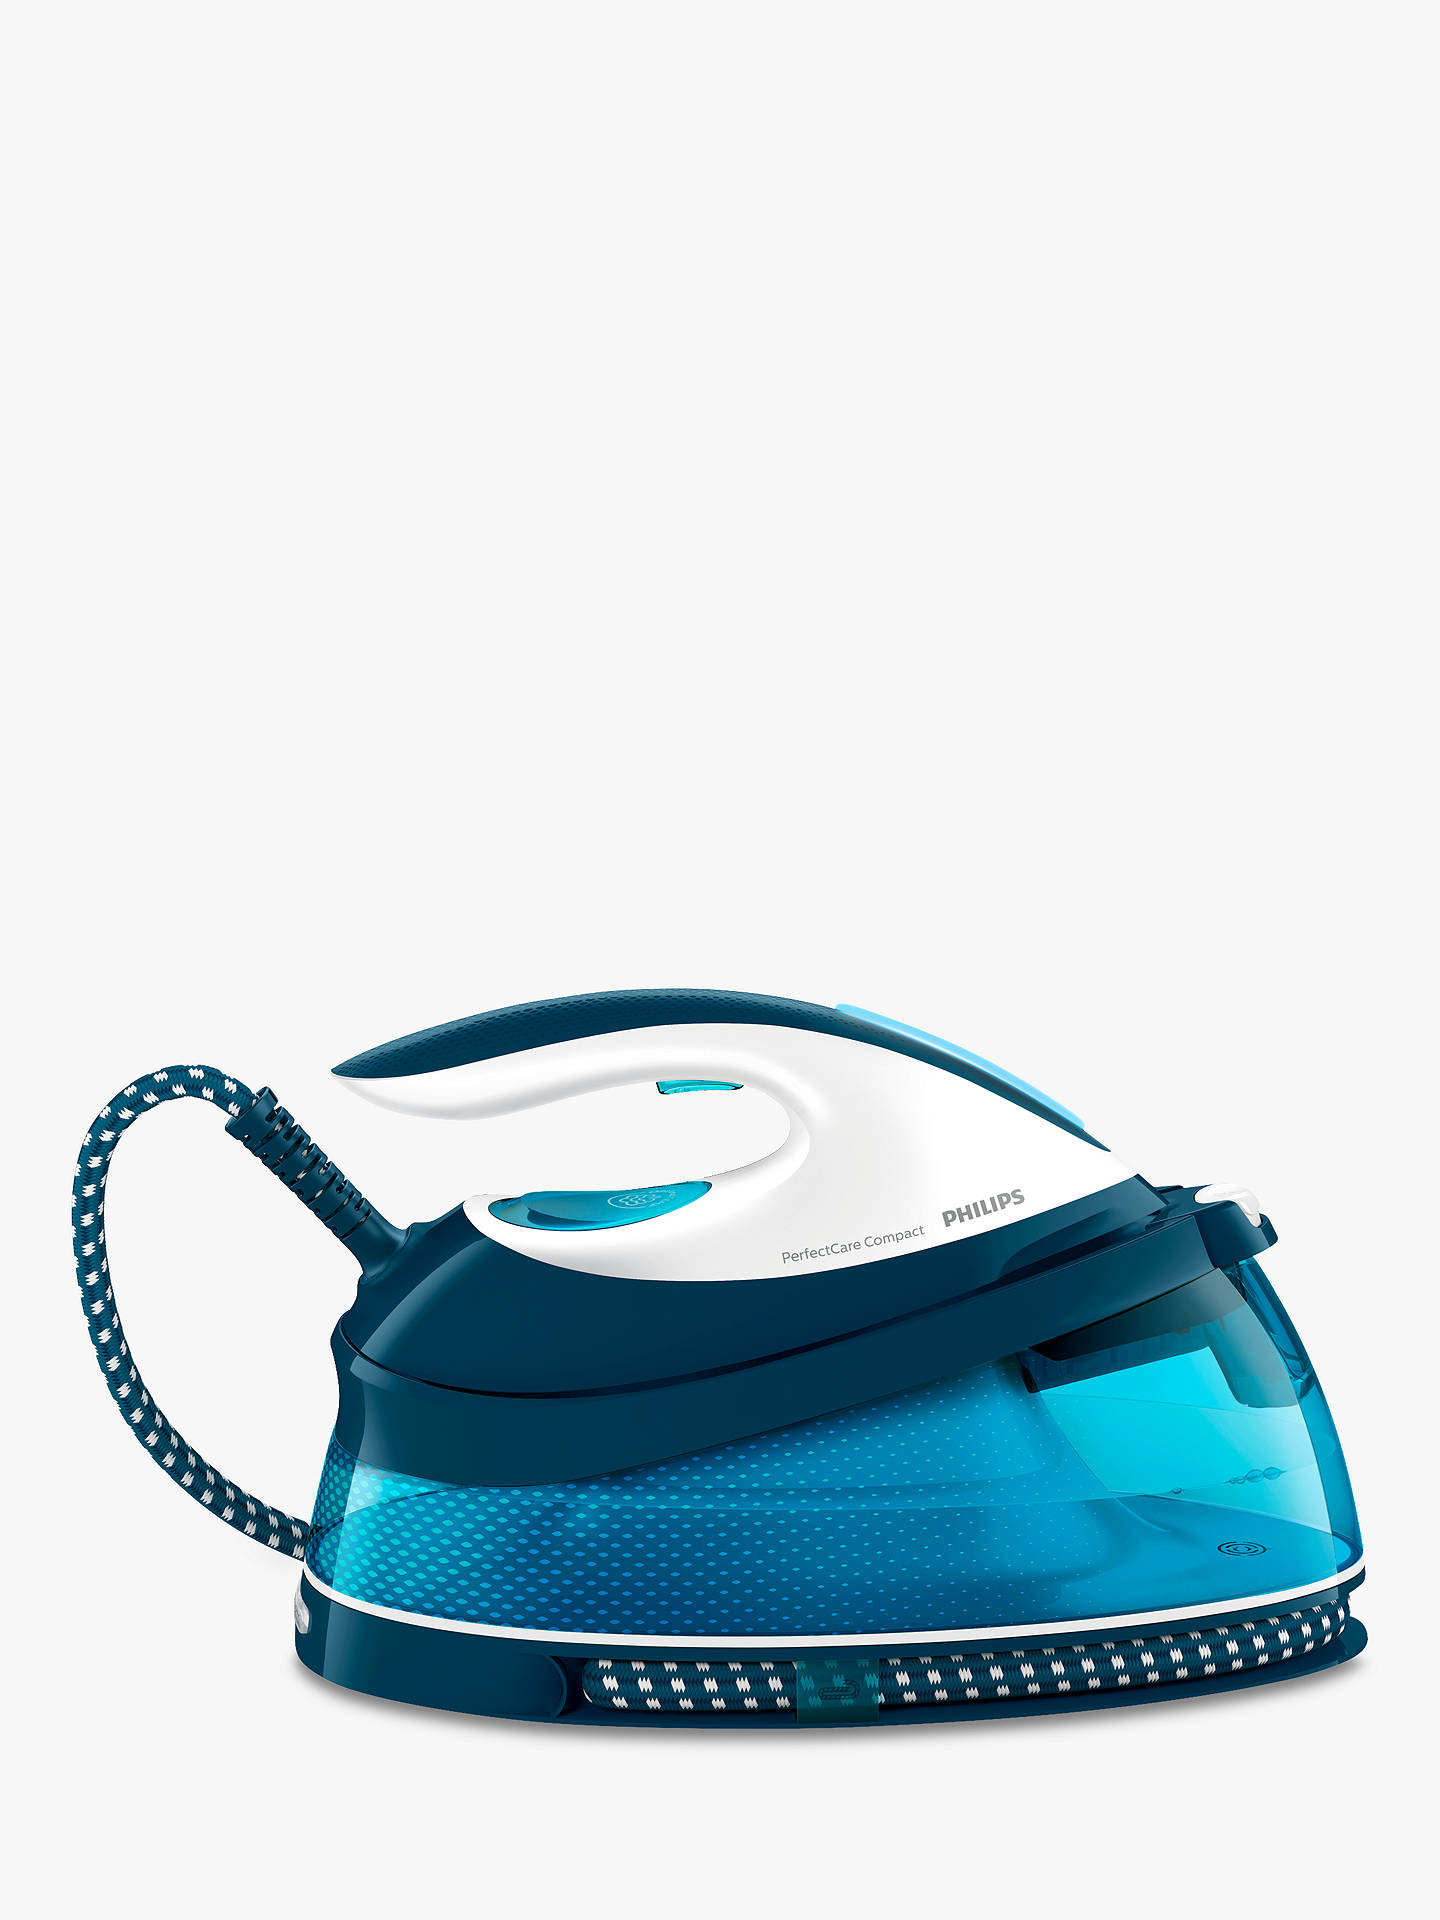 Philips GC7805/20 PerfectCare Compact Steam Generator Iron, Blue at ...